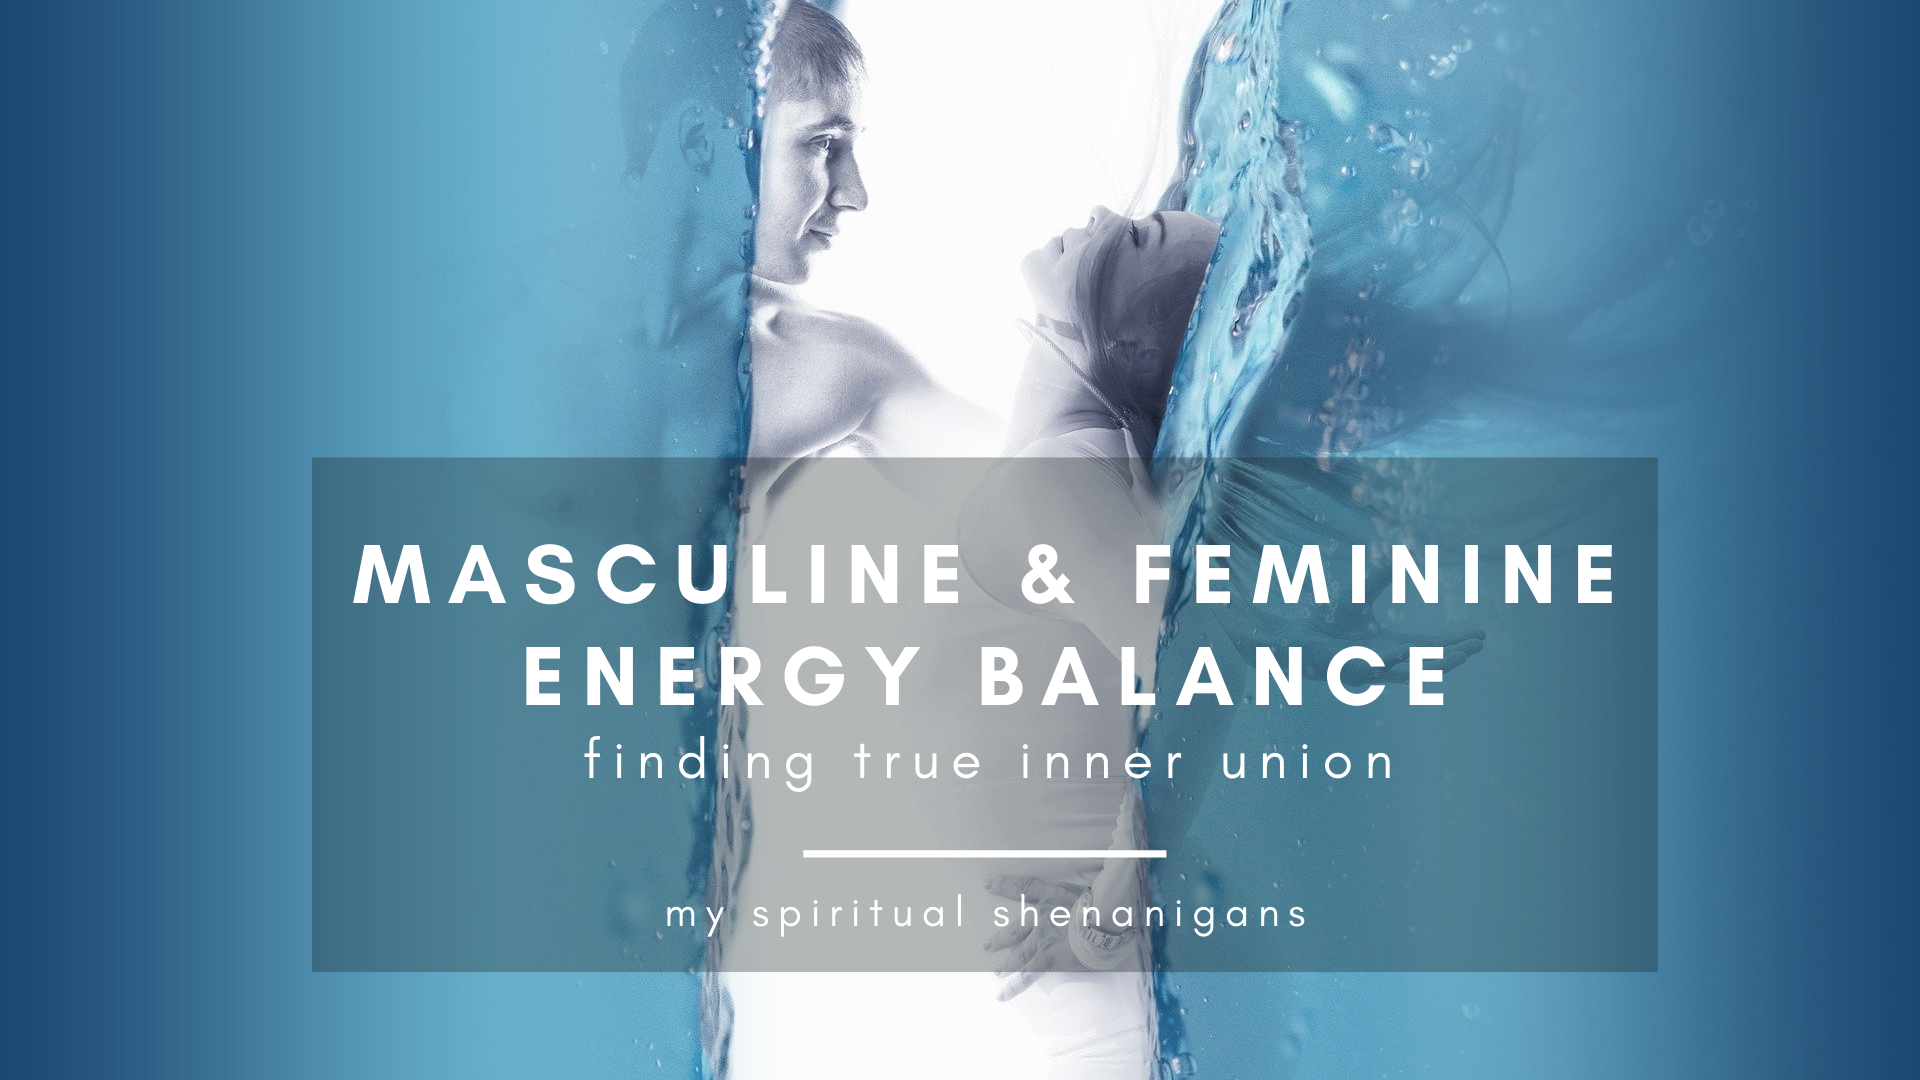 Masculine energy is what What is